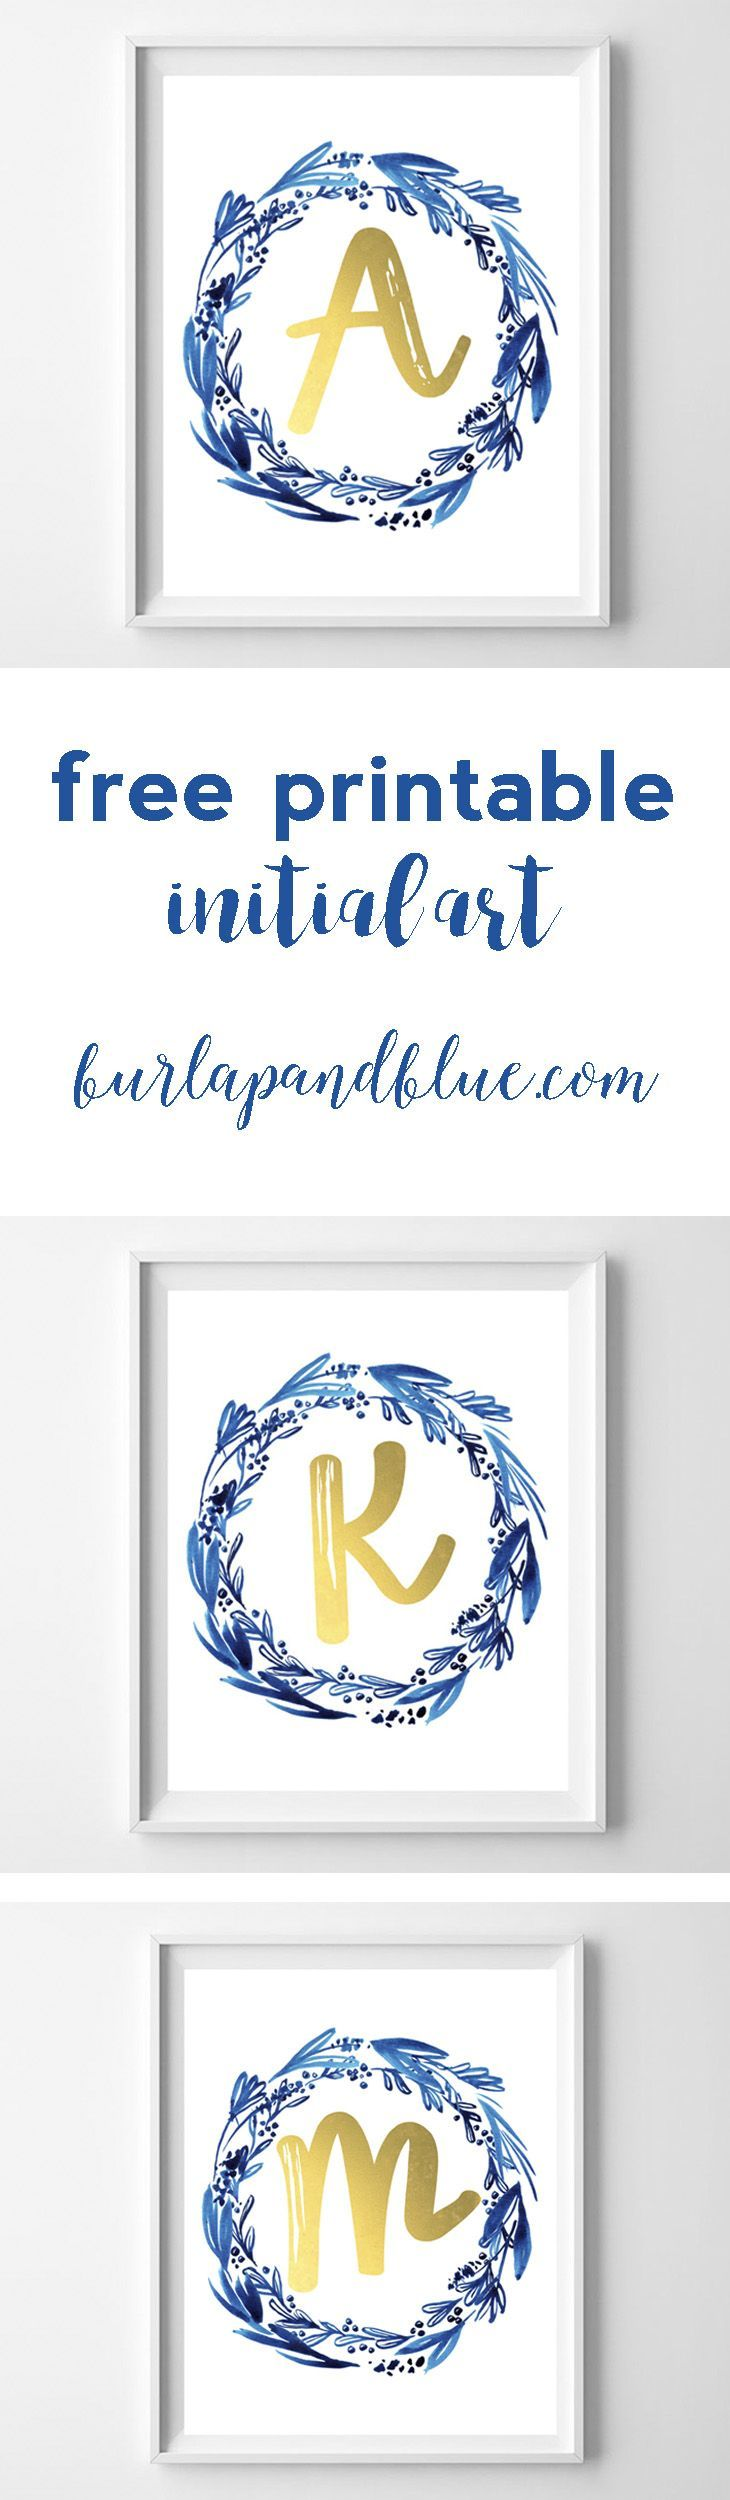 free printable initial art in indigo and gold! perfect for a gift, nursery or home decor.Nx